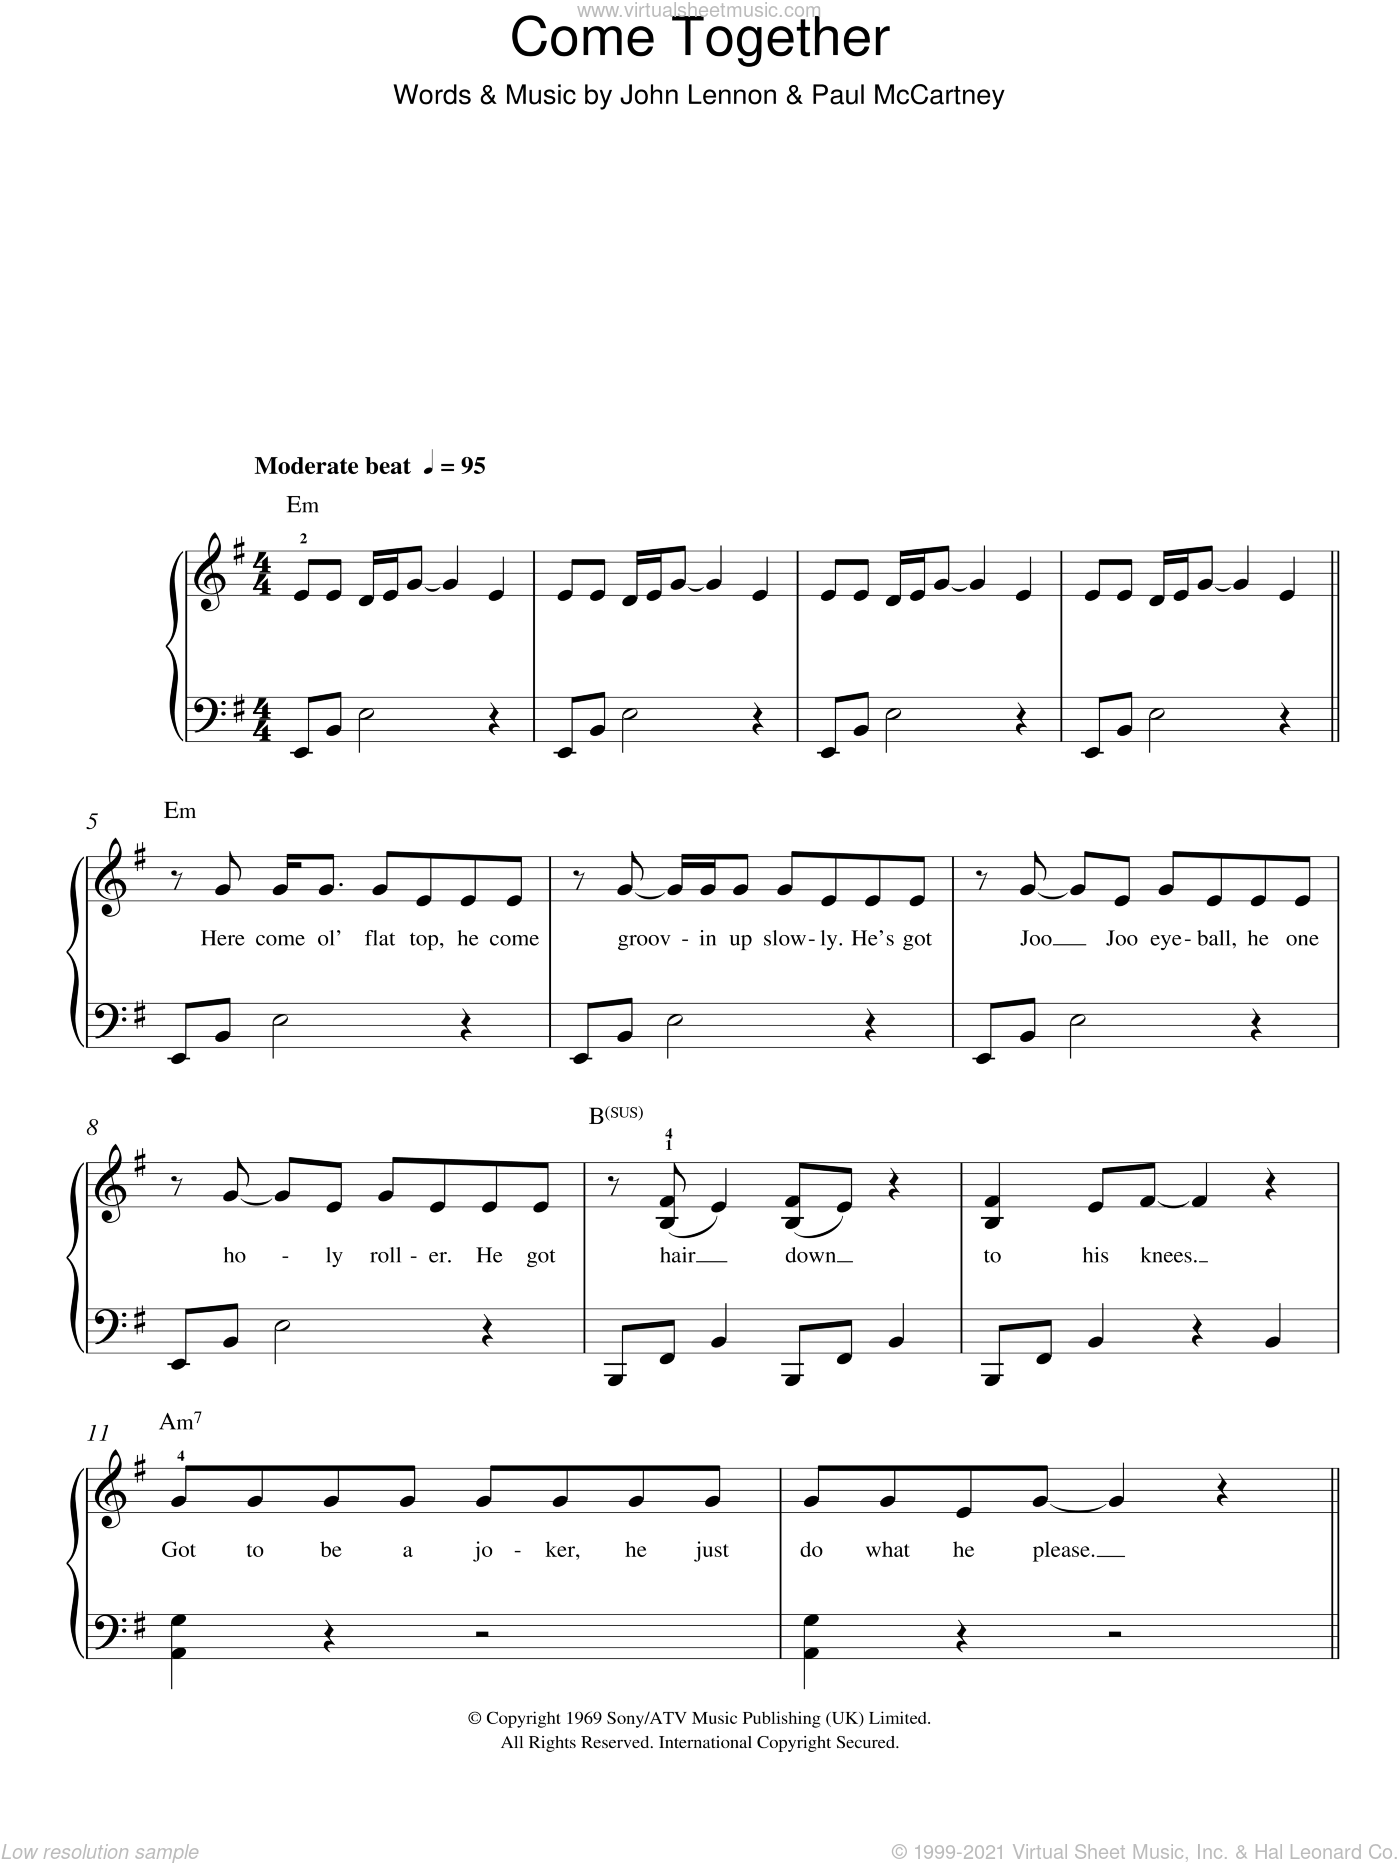 Come Together sheet music for piano solo by Michael Jackson, The Beatles, John Lennon and Paul McCartney, easy. Score Image Preview.